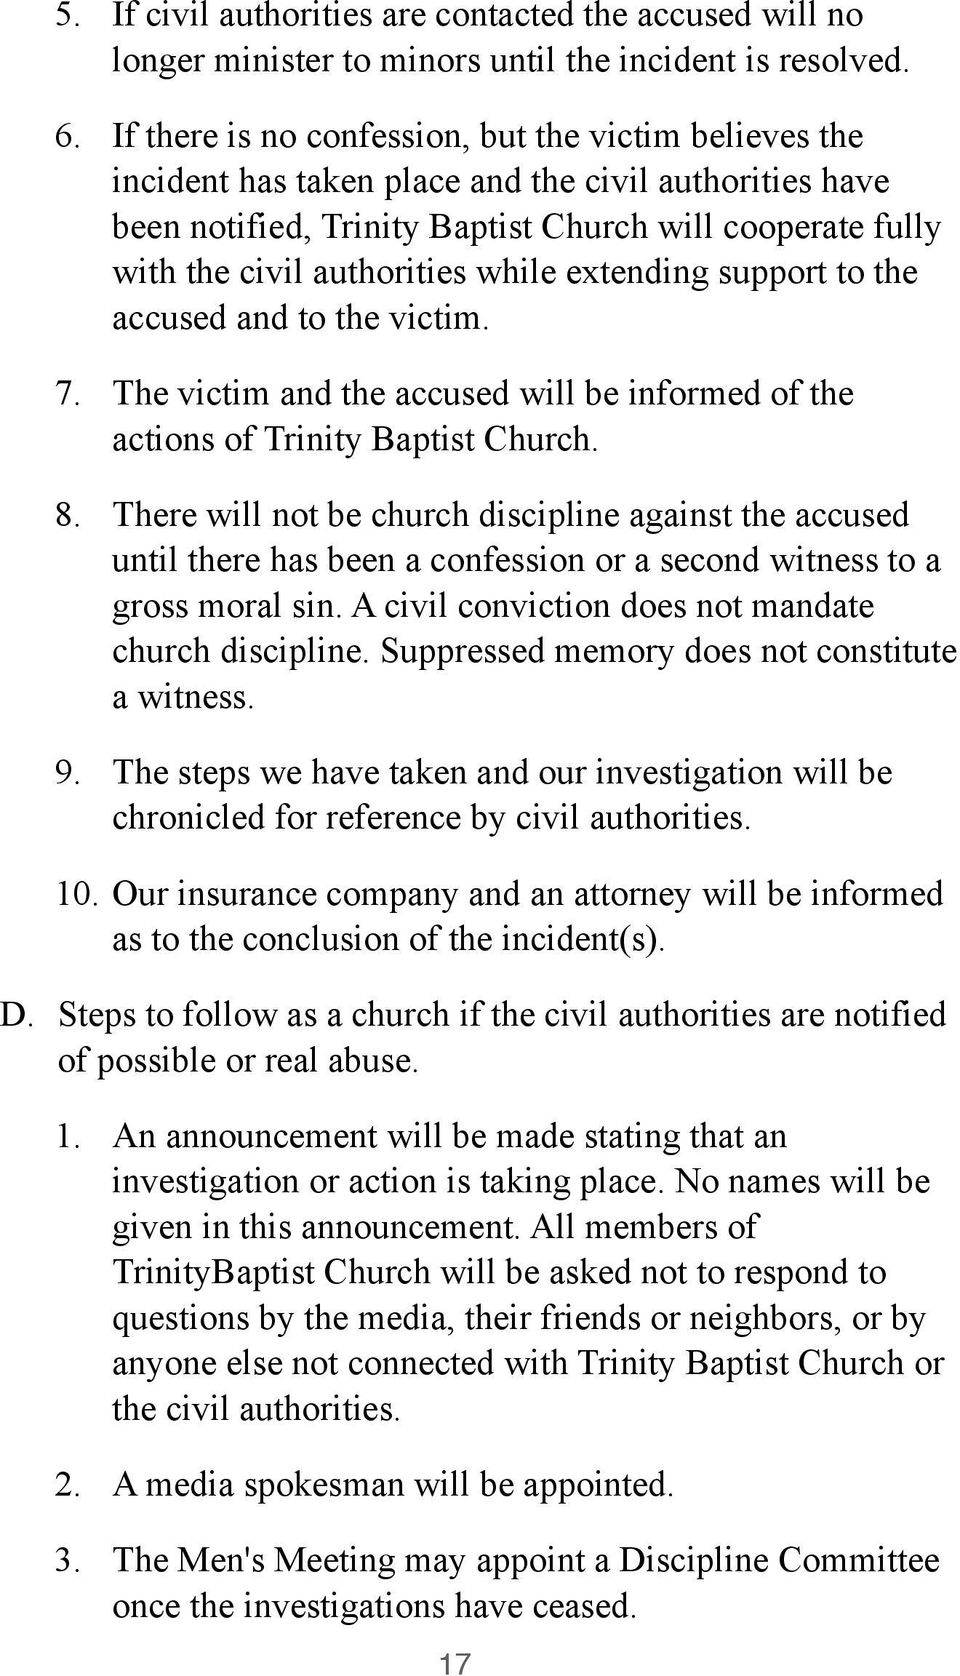 while extending support to the accused and to the victim. 7. The victim and the accused will be informed of the actions of Trinity Baptist Church. 8.